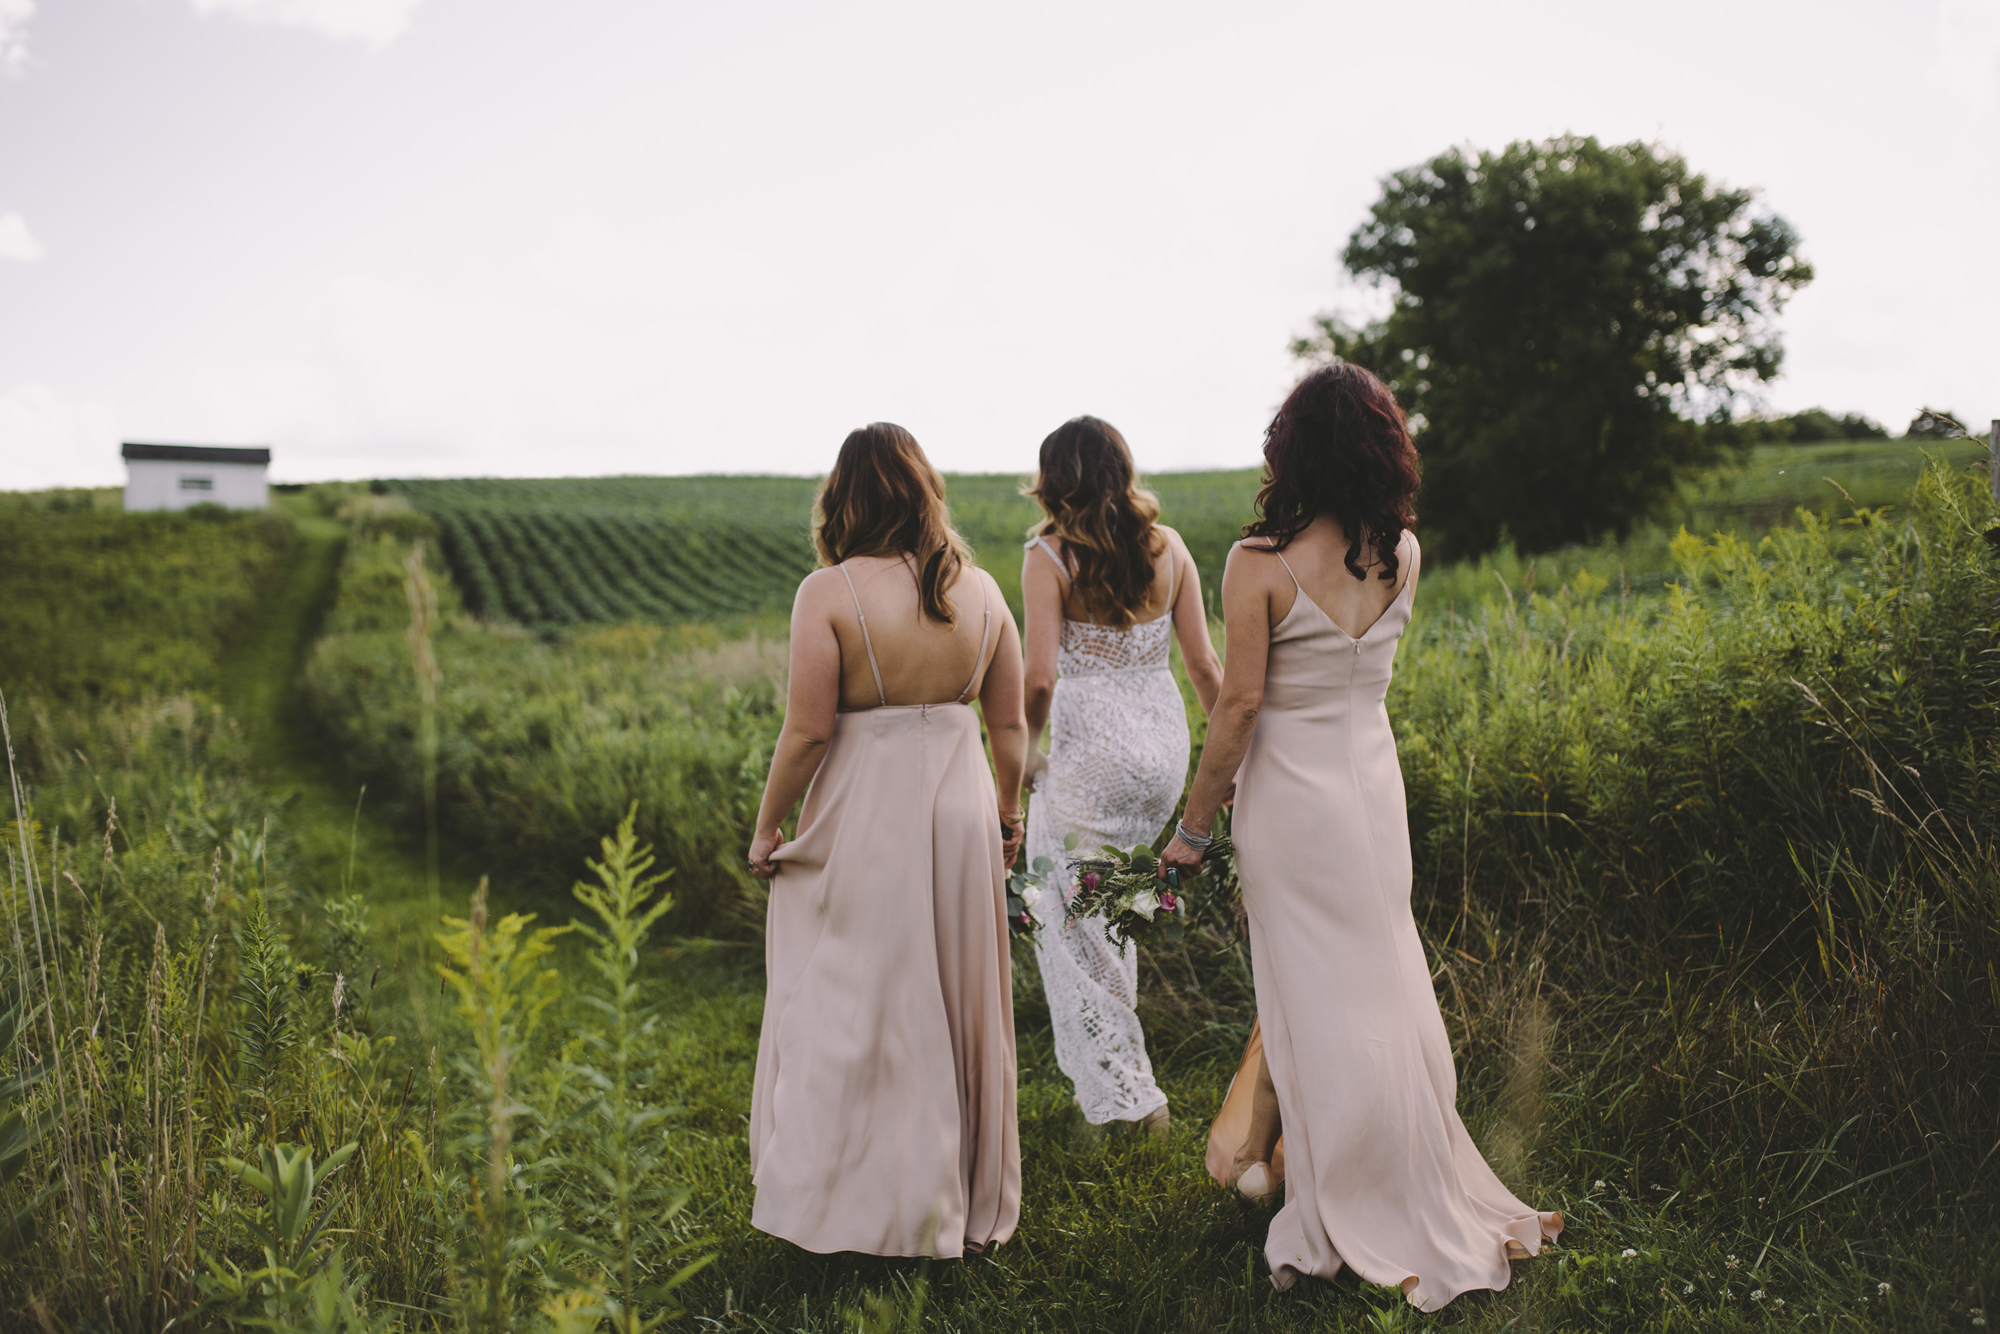 Brandon werth wisconsin wedding photographer enchanted barn small wedding party nature